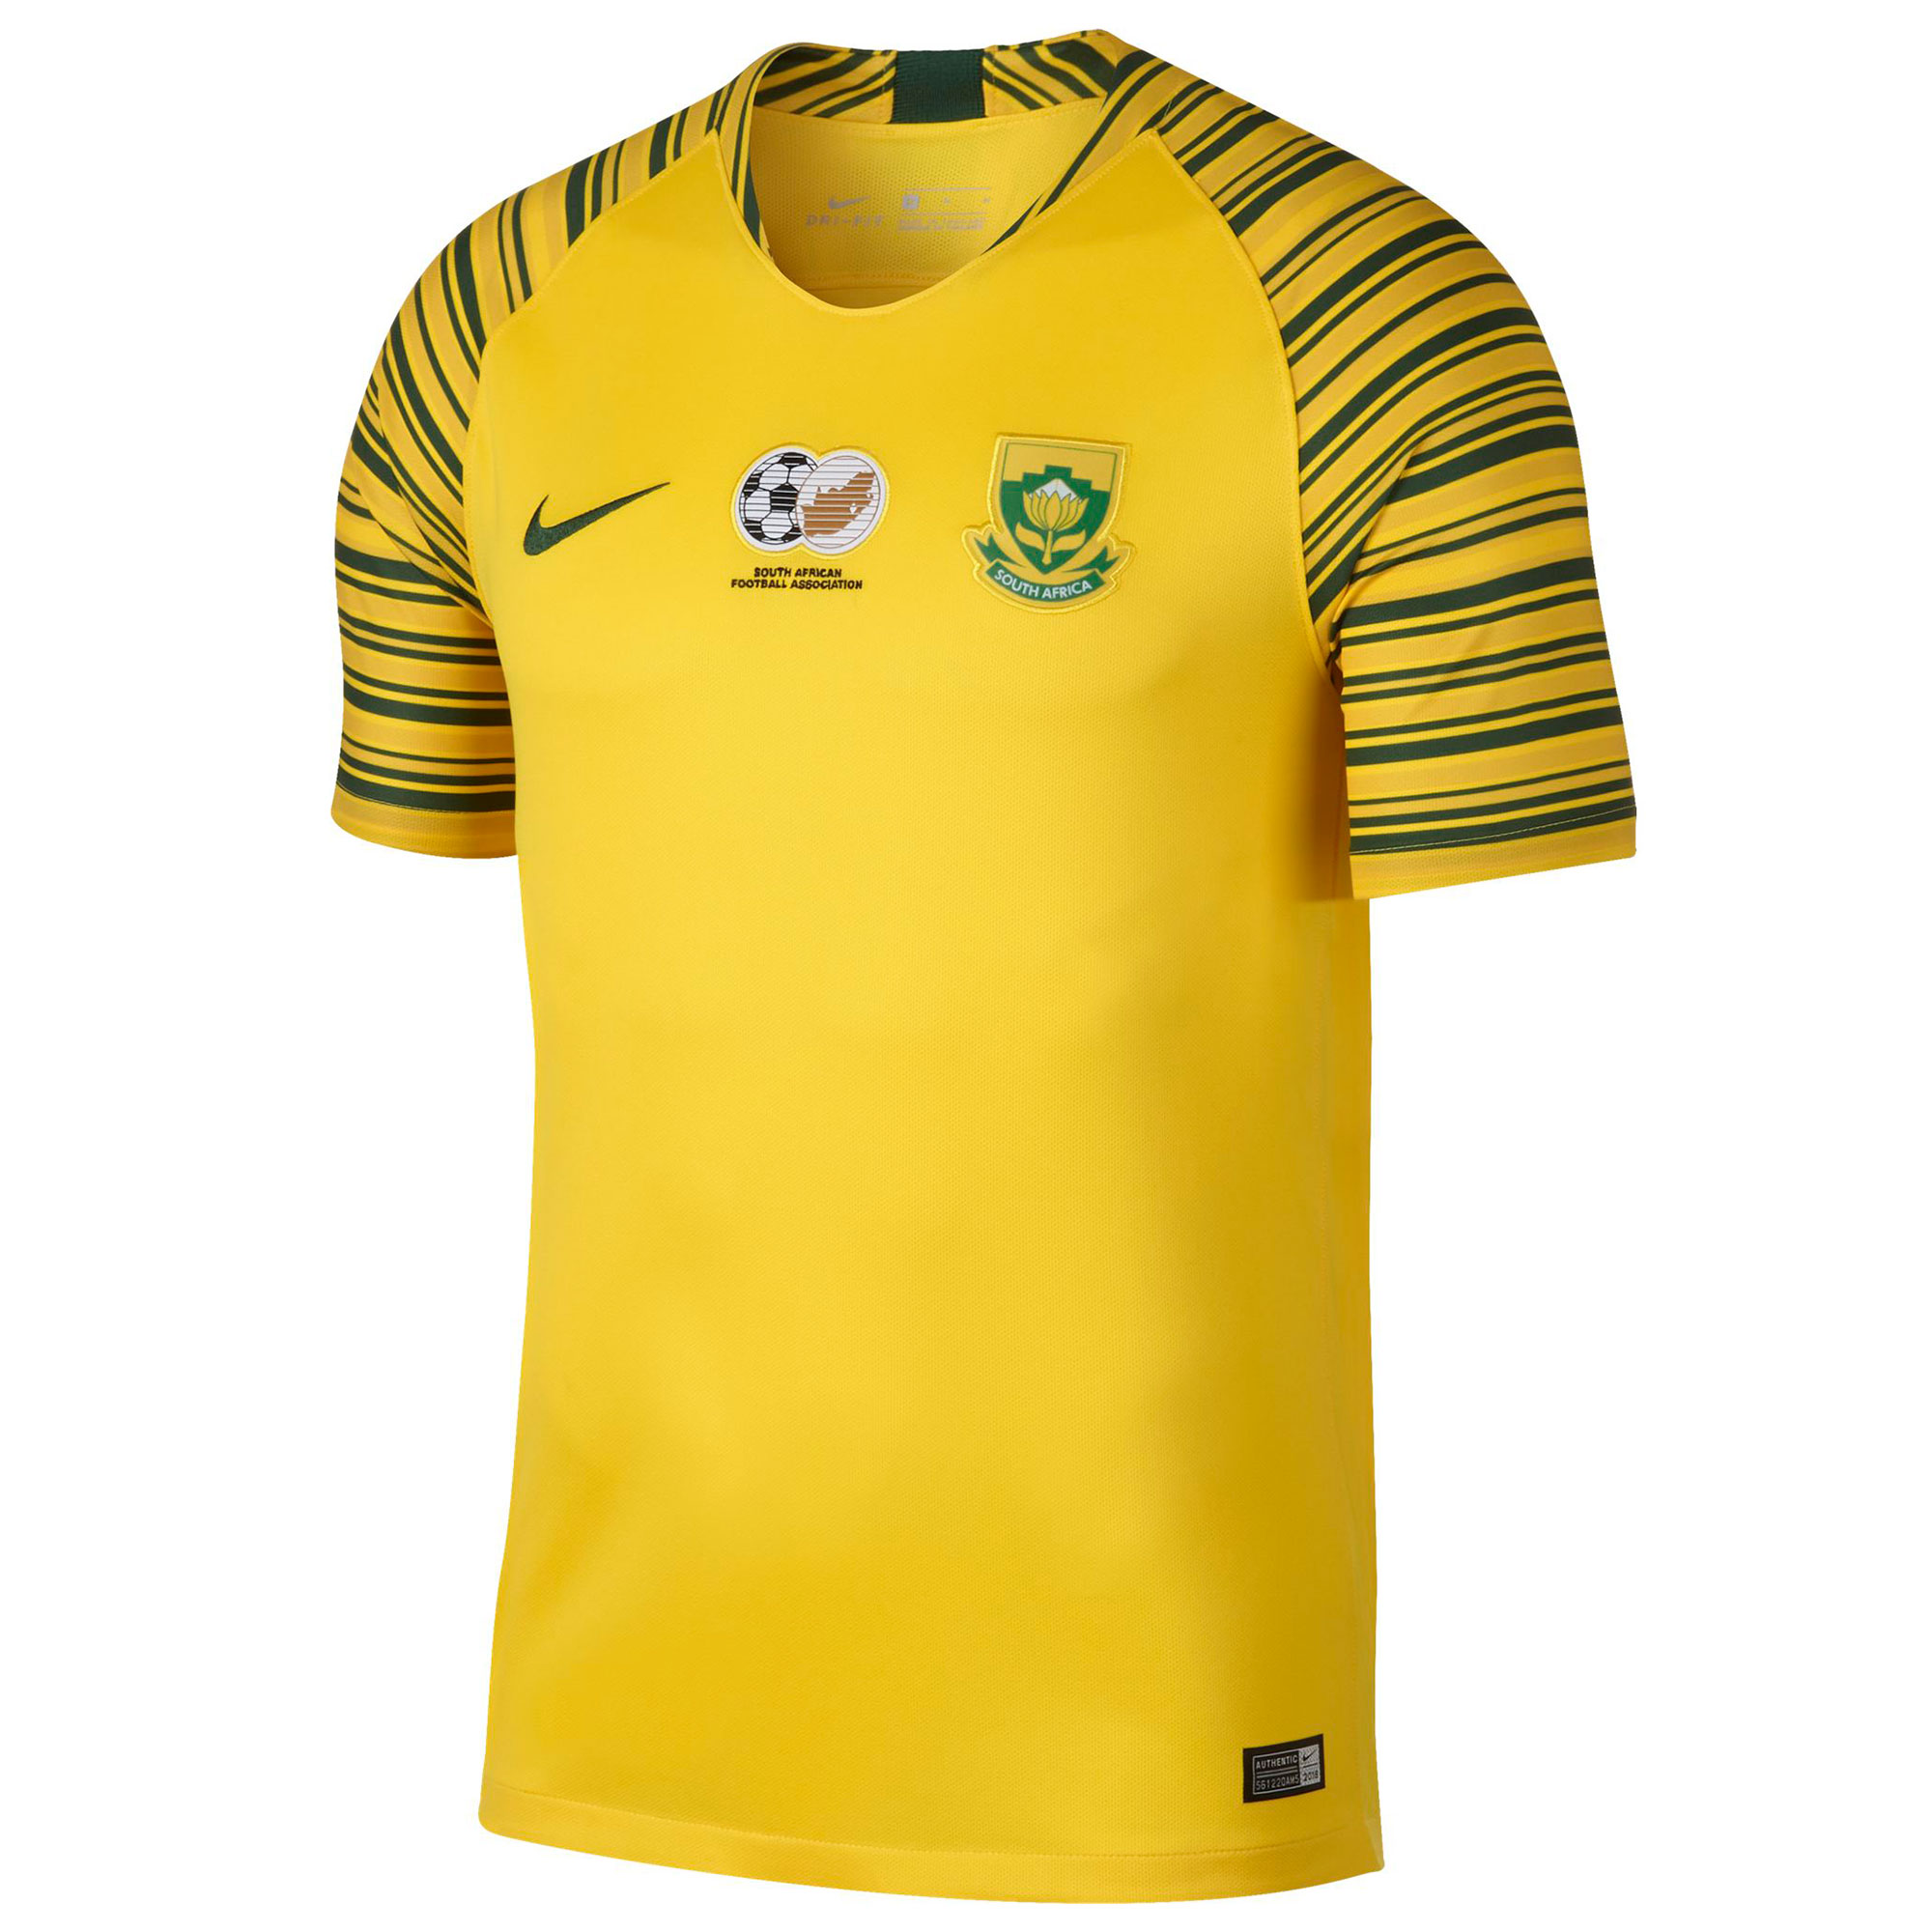 South Africa home shirt